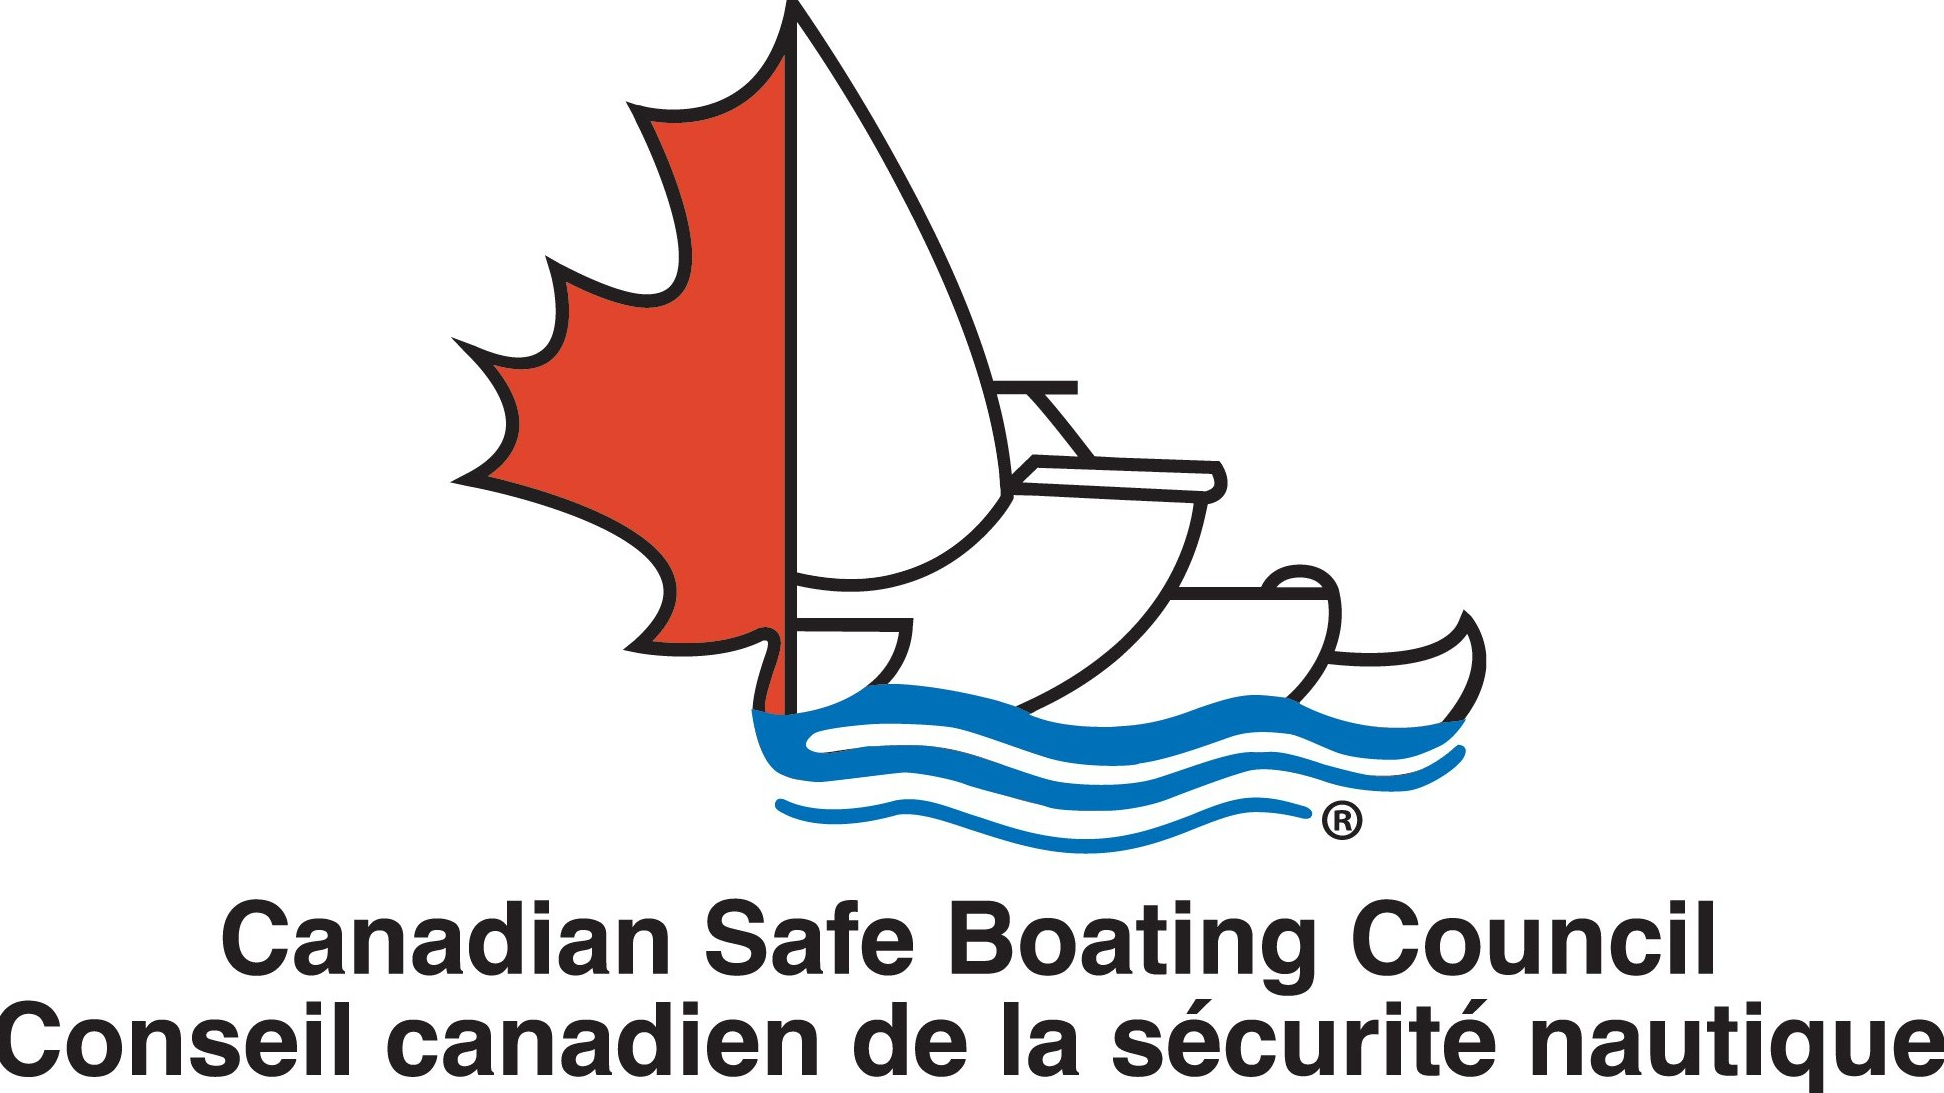 CSBC wants to keep Canadian anglers safe on the water